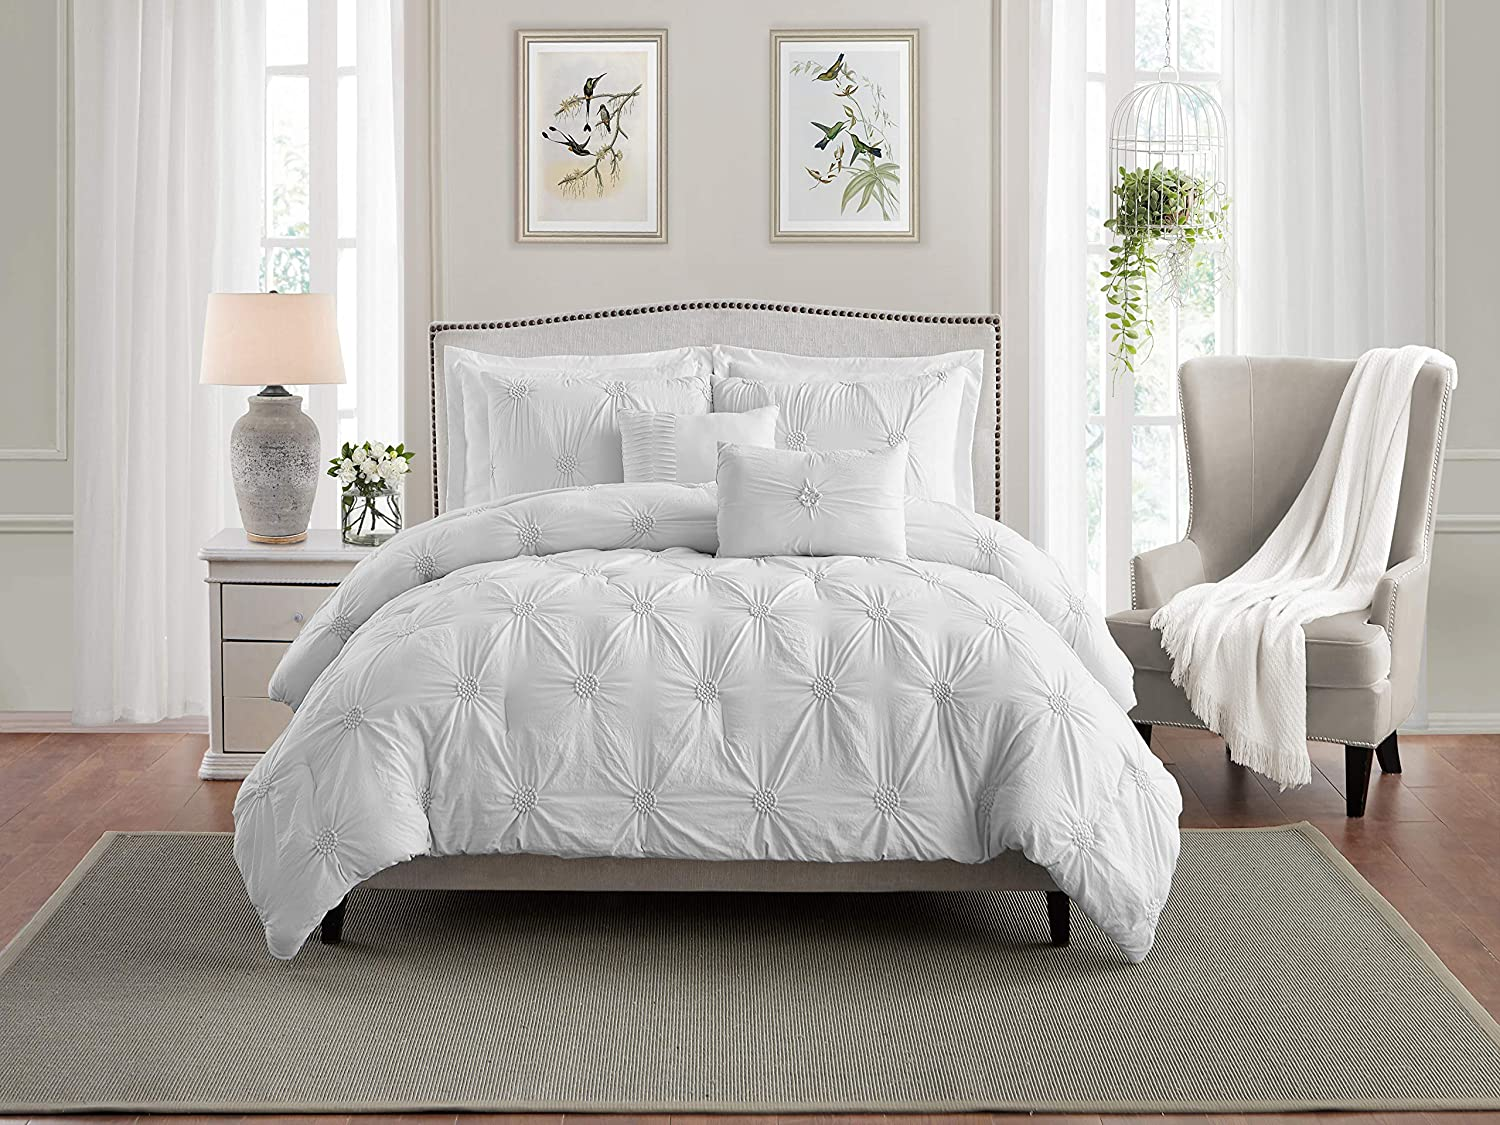 Swift Home Premium Bedding Set Collection 3-Piece Floral Ruched Pinch Pleat Pintuck Comforter Set - Full/Queen, White